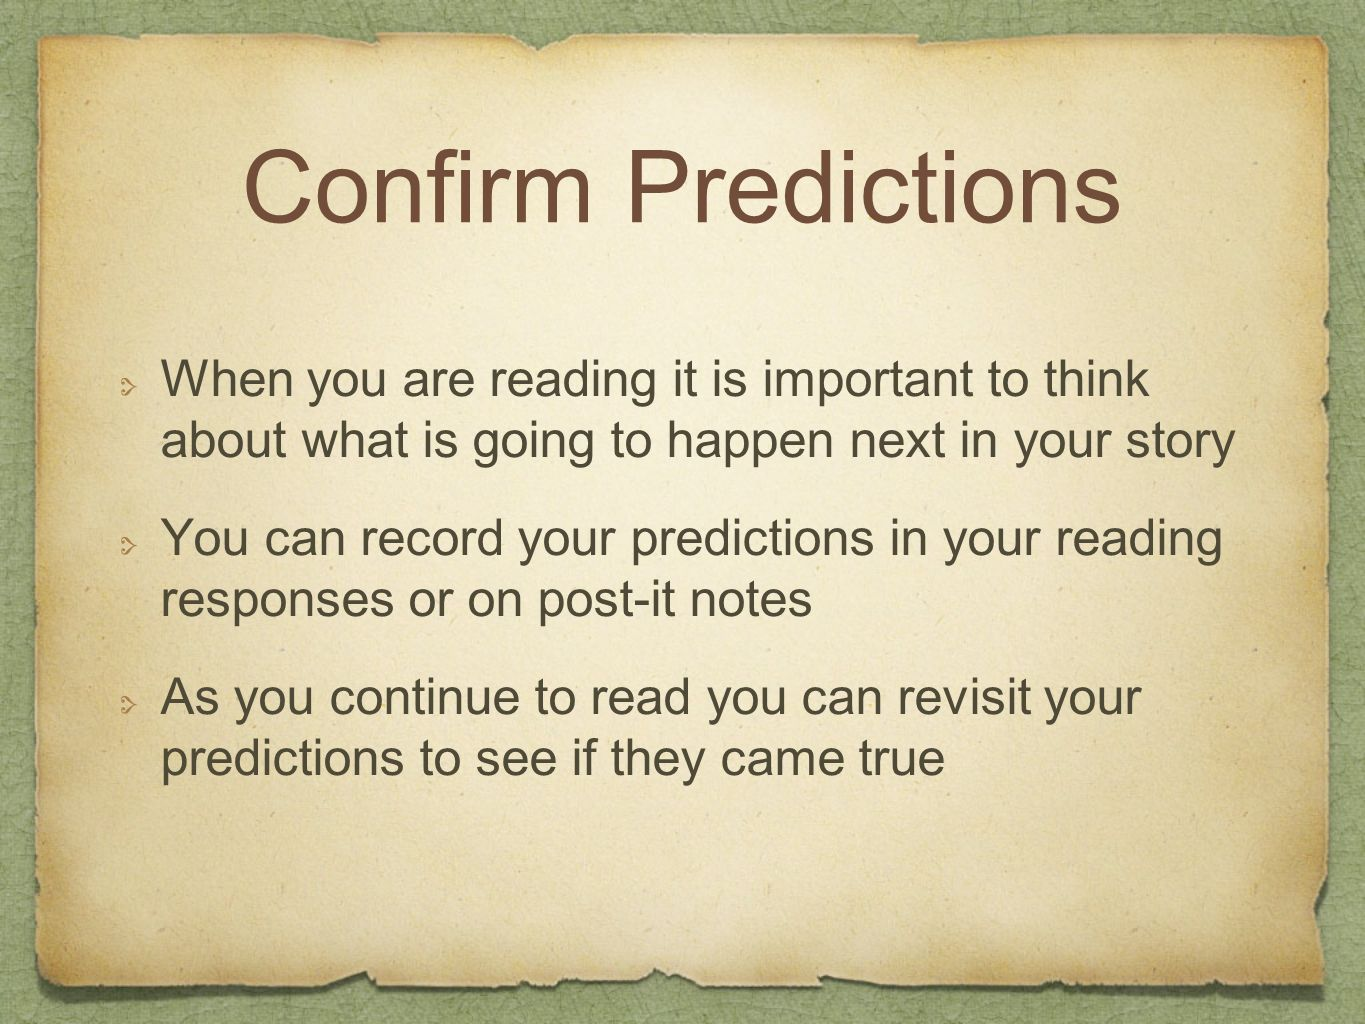 Confirm Predictions When you are reading it is important to think about what is going to happen next in your story.